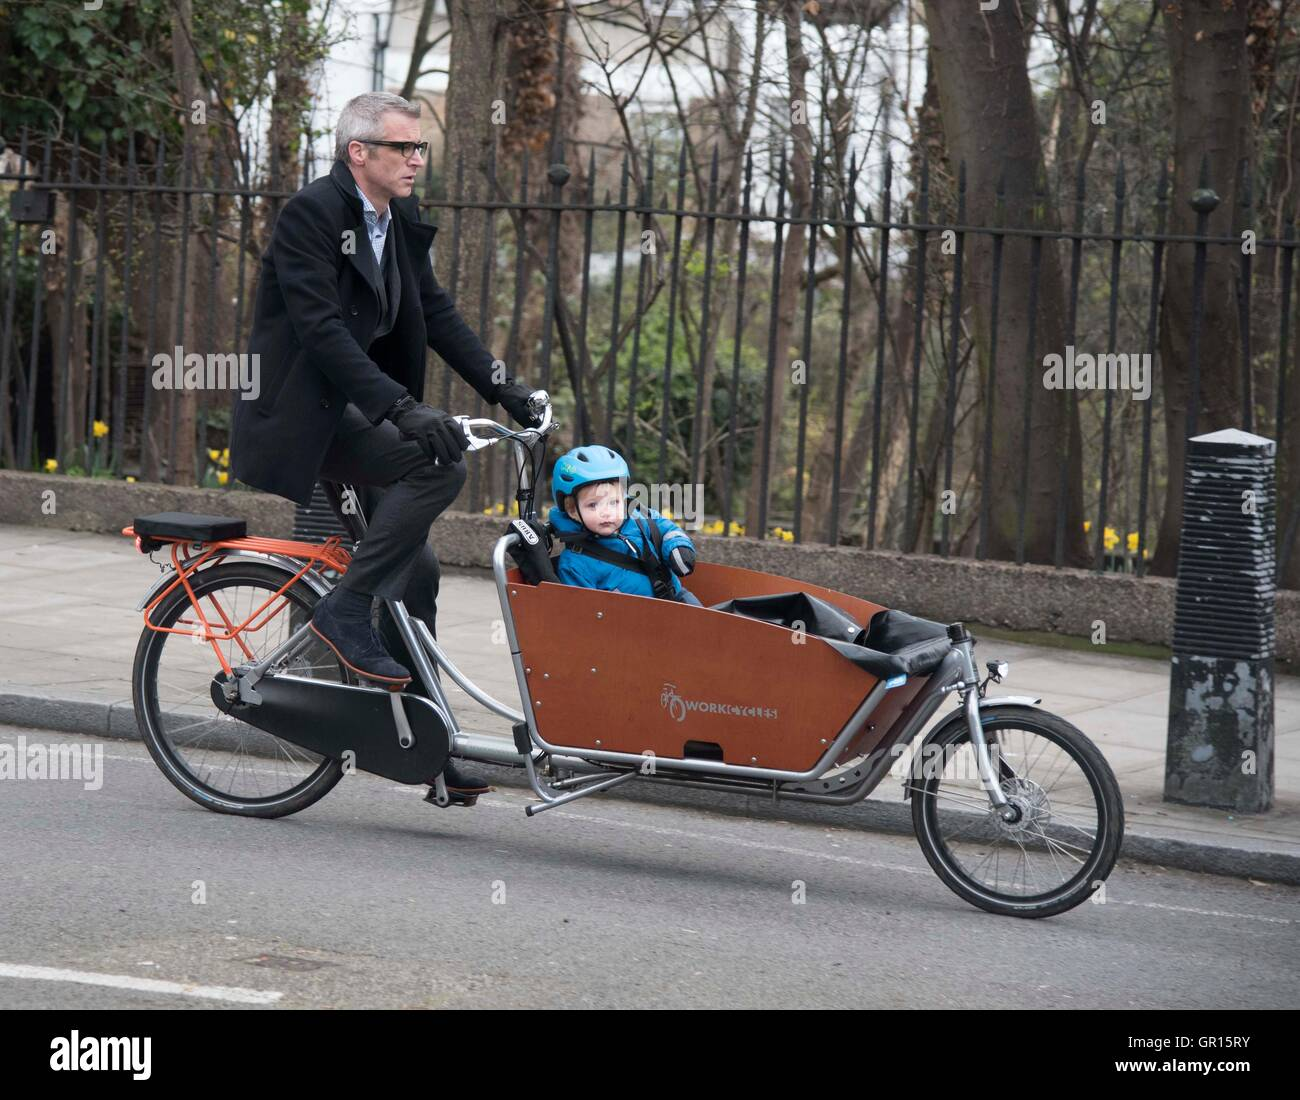 Cyclist cycle school run child seat bike safety - Stock Image